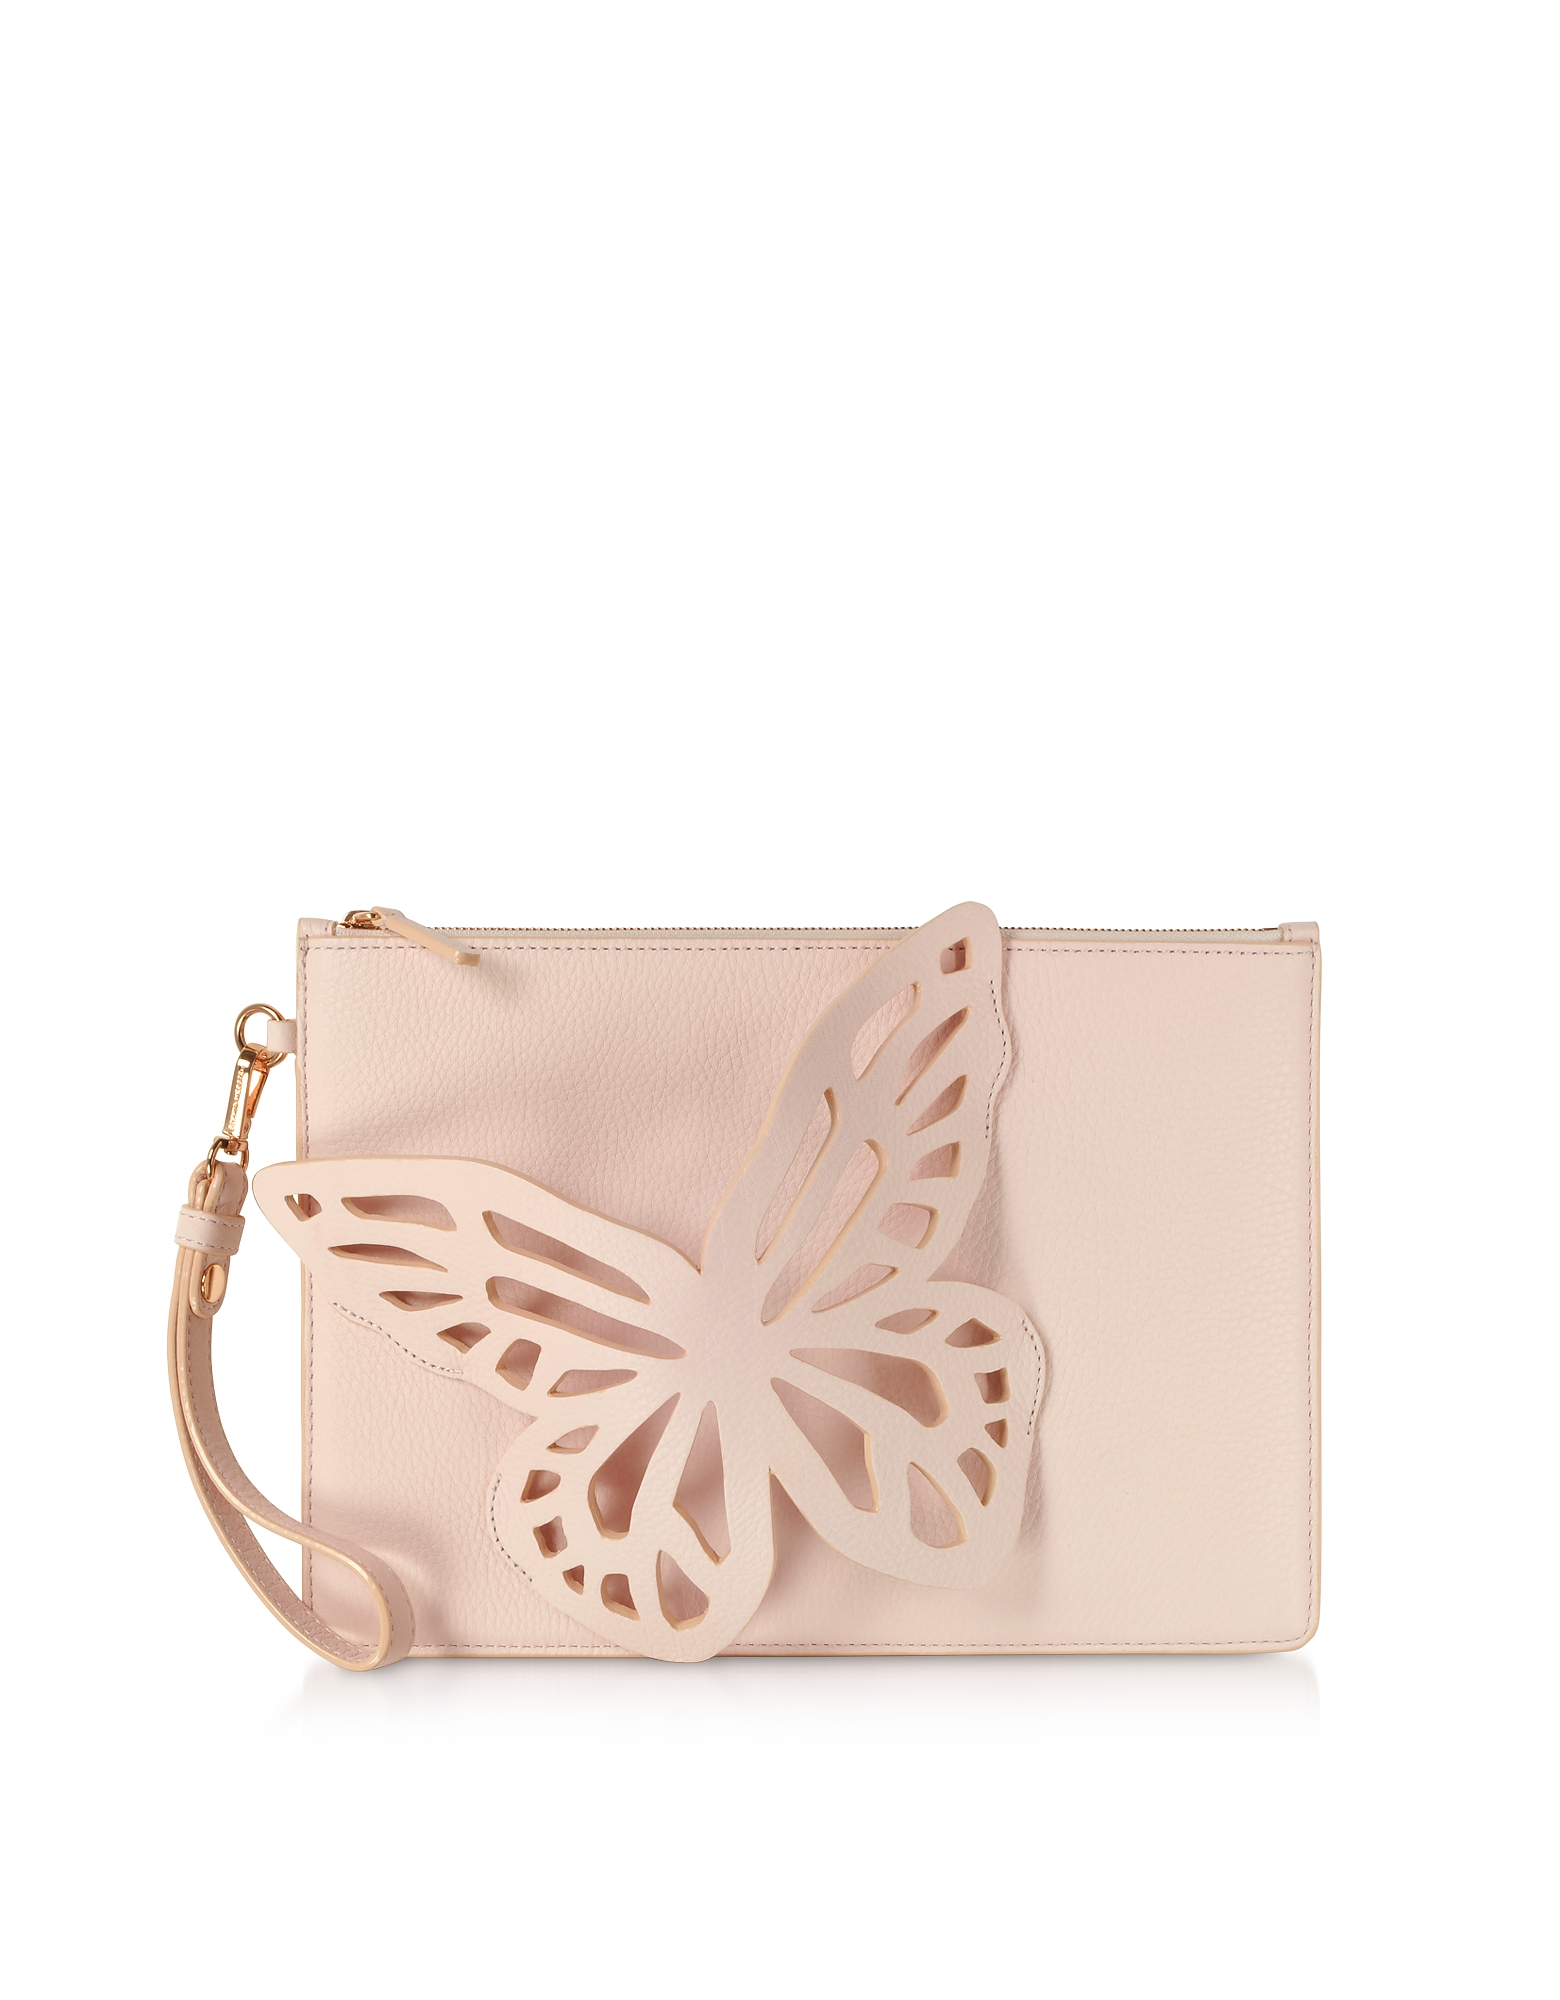 Sophia Webster Handbags, Sunkissed Pink Flossy Butterfly Pouchette